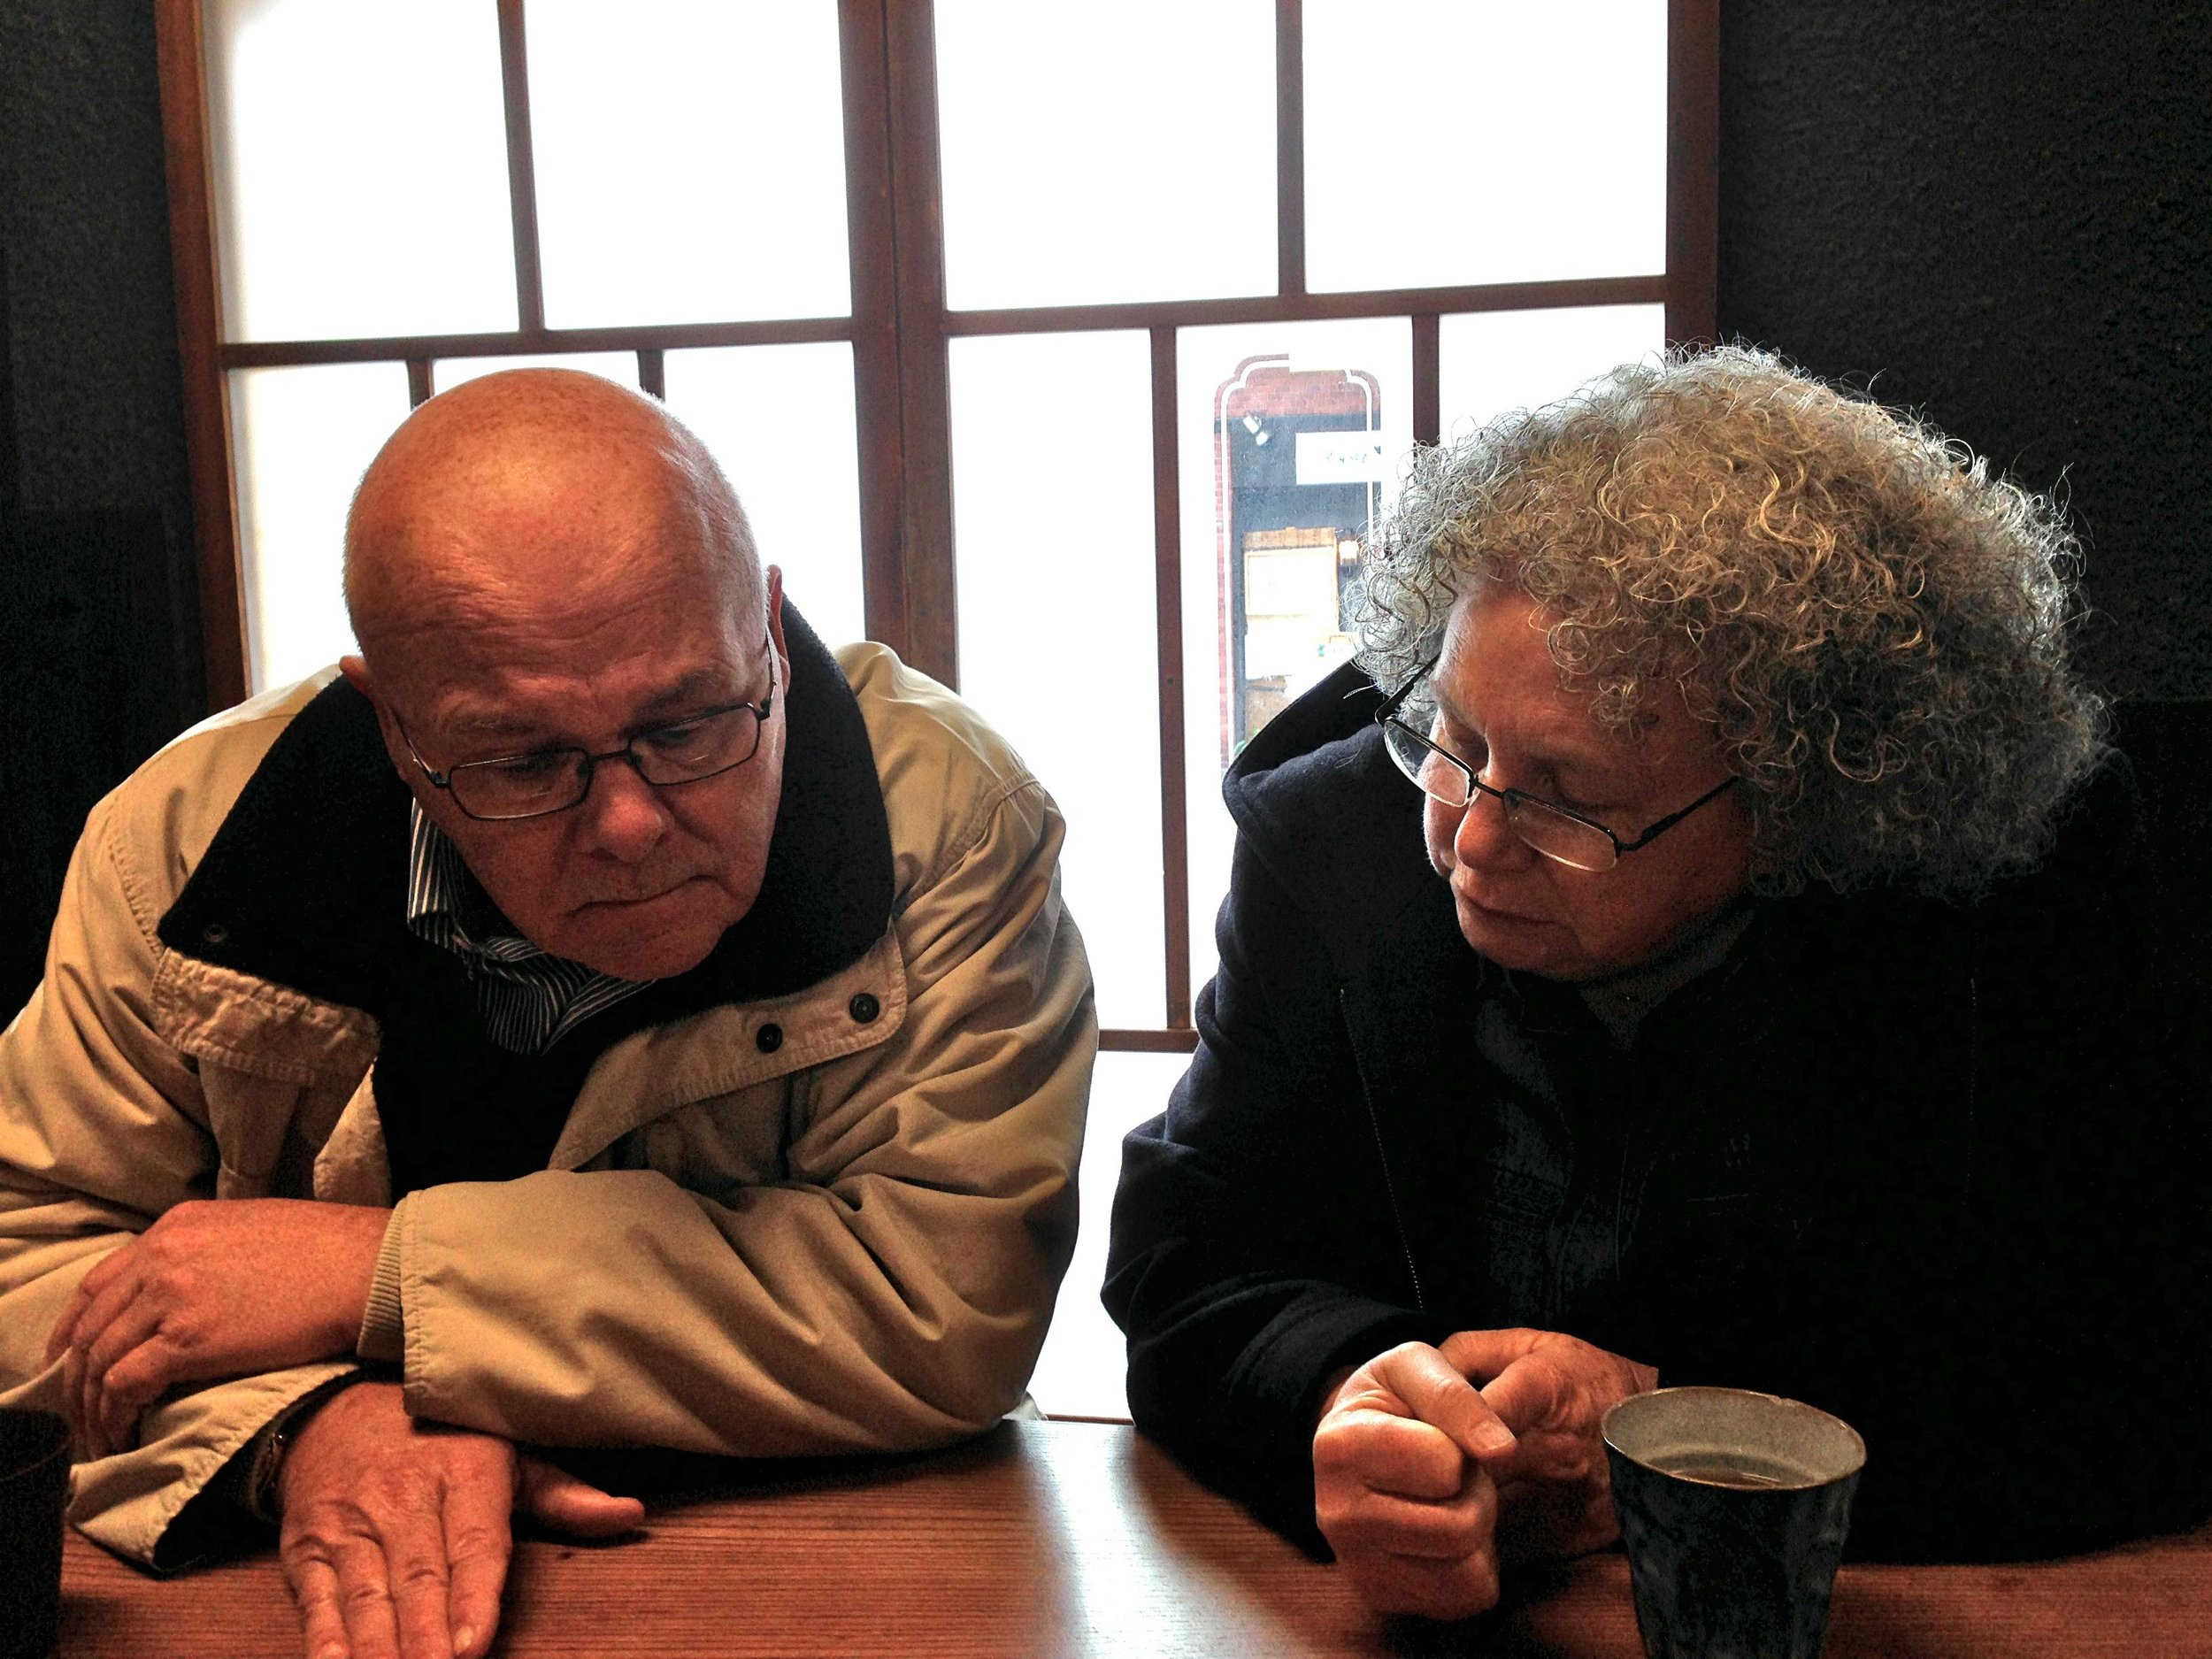 Deborah,Bill looking at menu.jpg